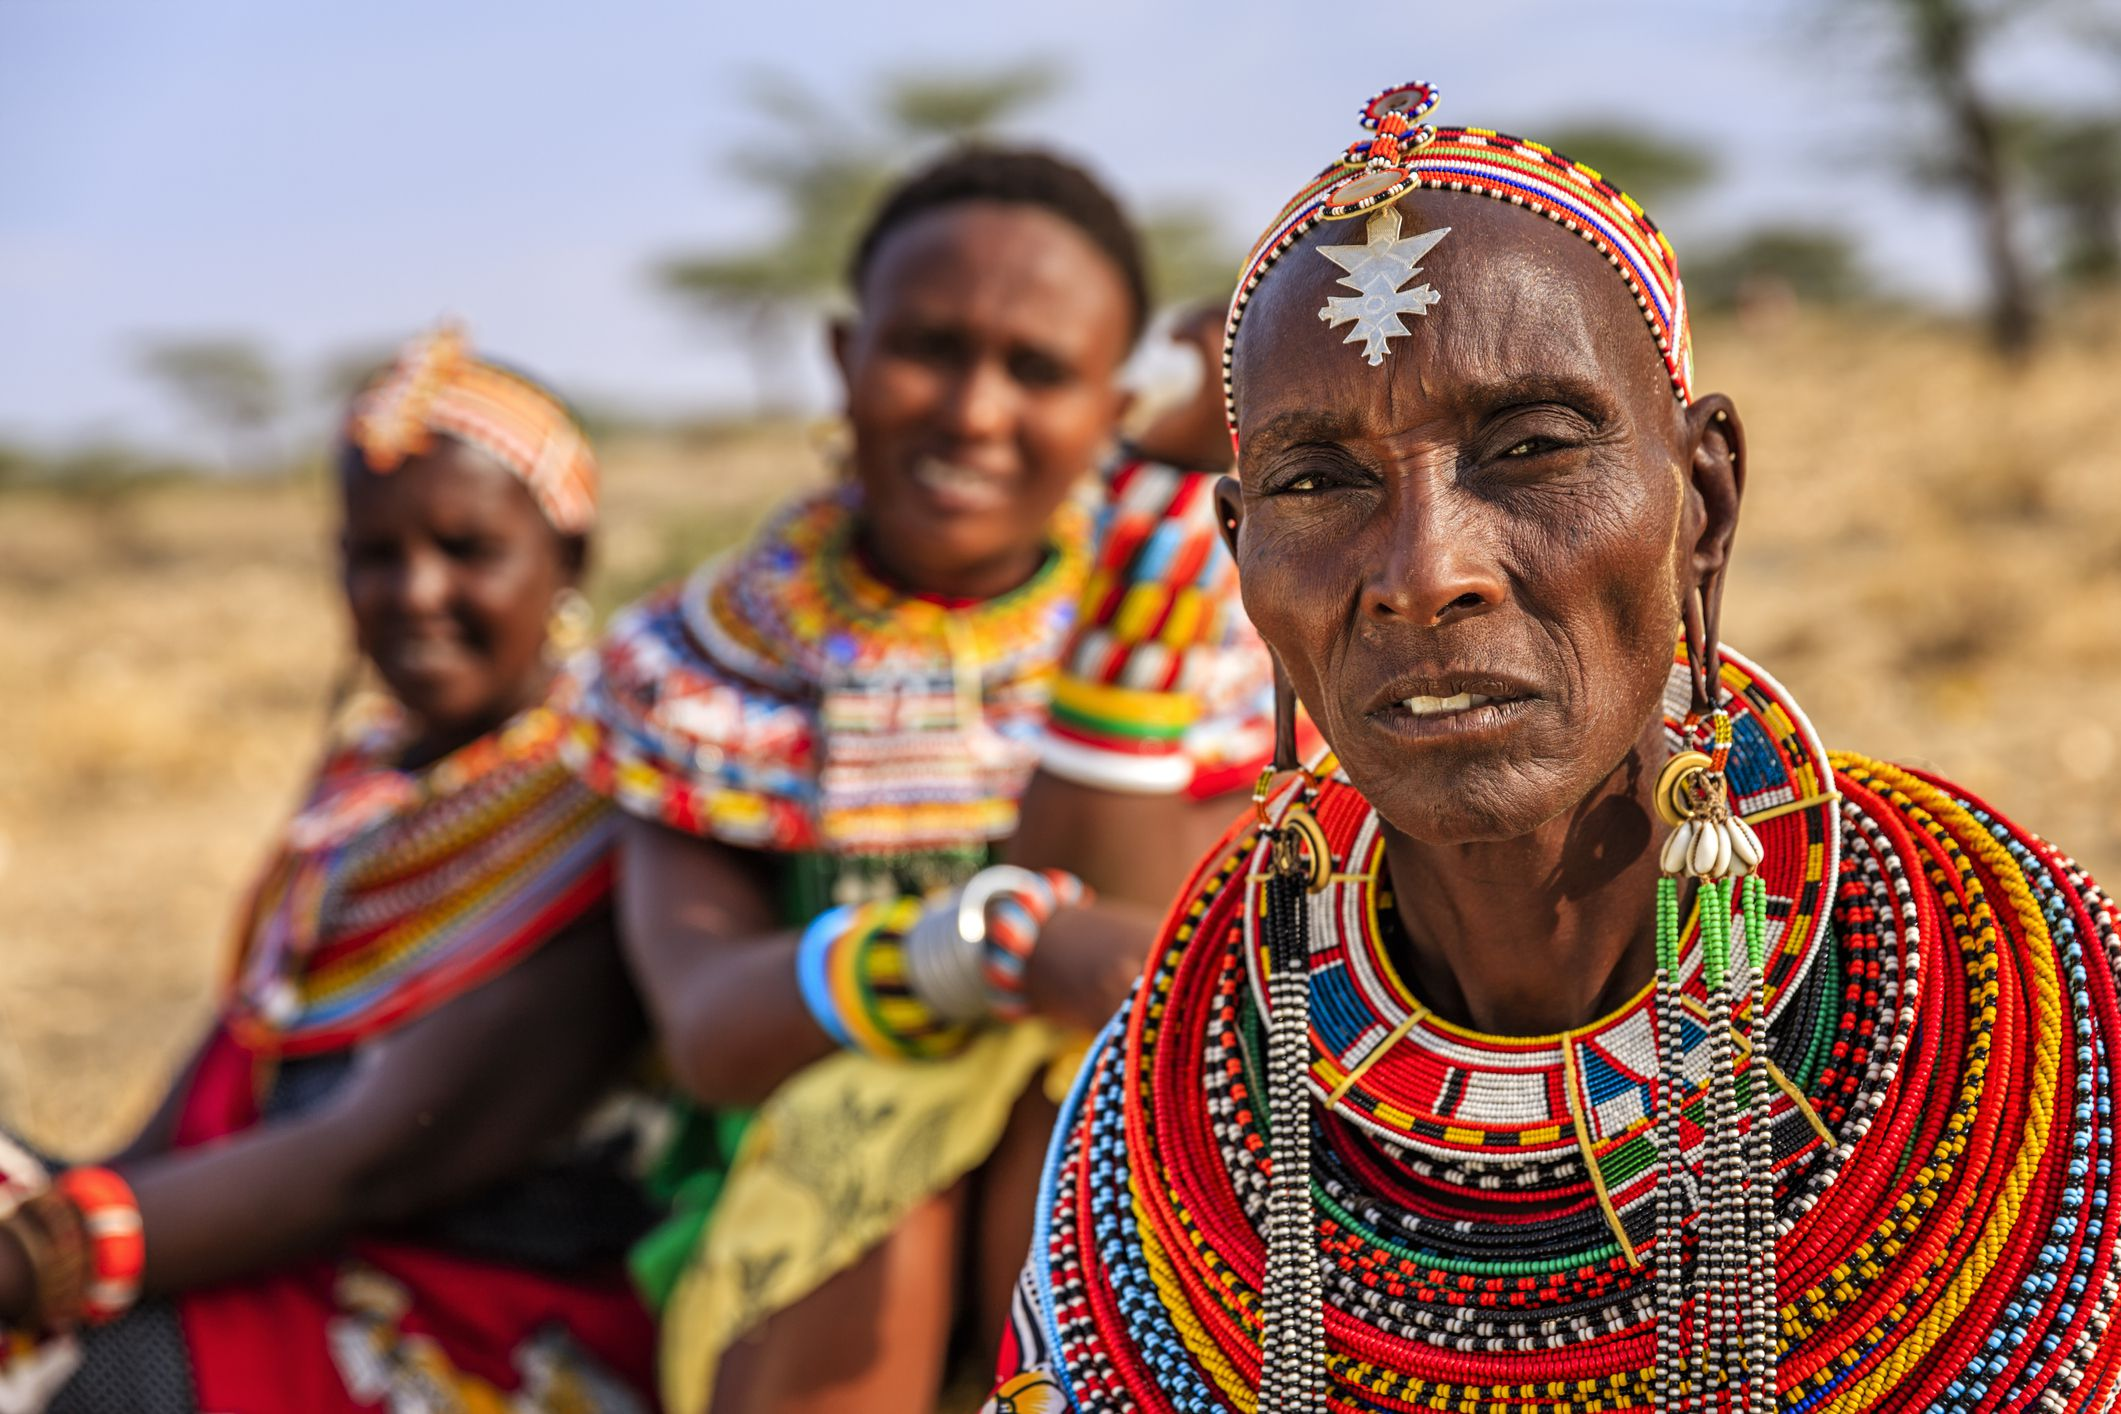 The Samburu: Indigenous People of East Africa